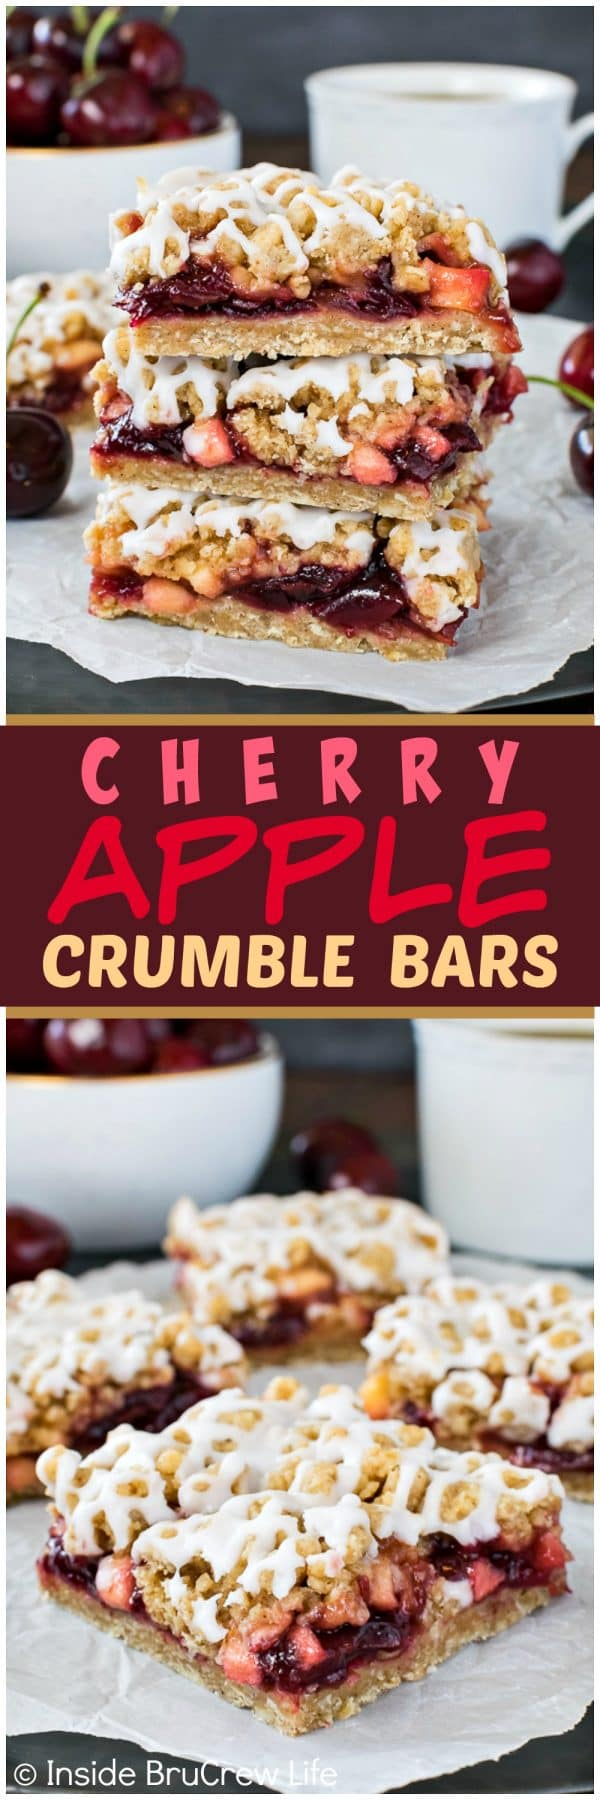 Cherry Apple Crumble Bars - sweet cherry preserves mixed with apples give these easy bars a sweet flavor! Great summer recipe to try warm with ice cream!!!!